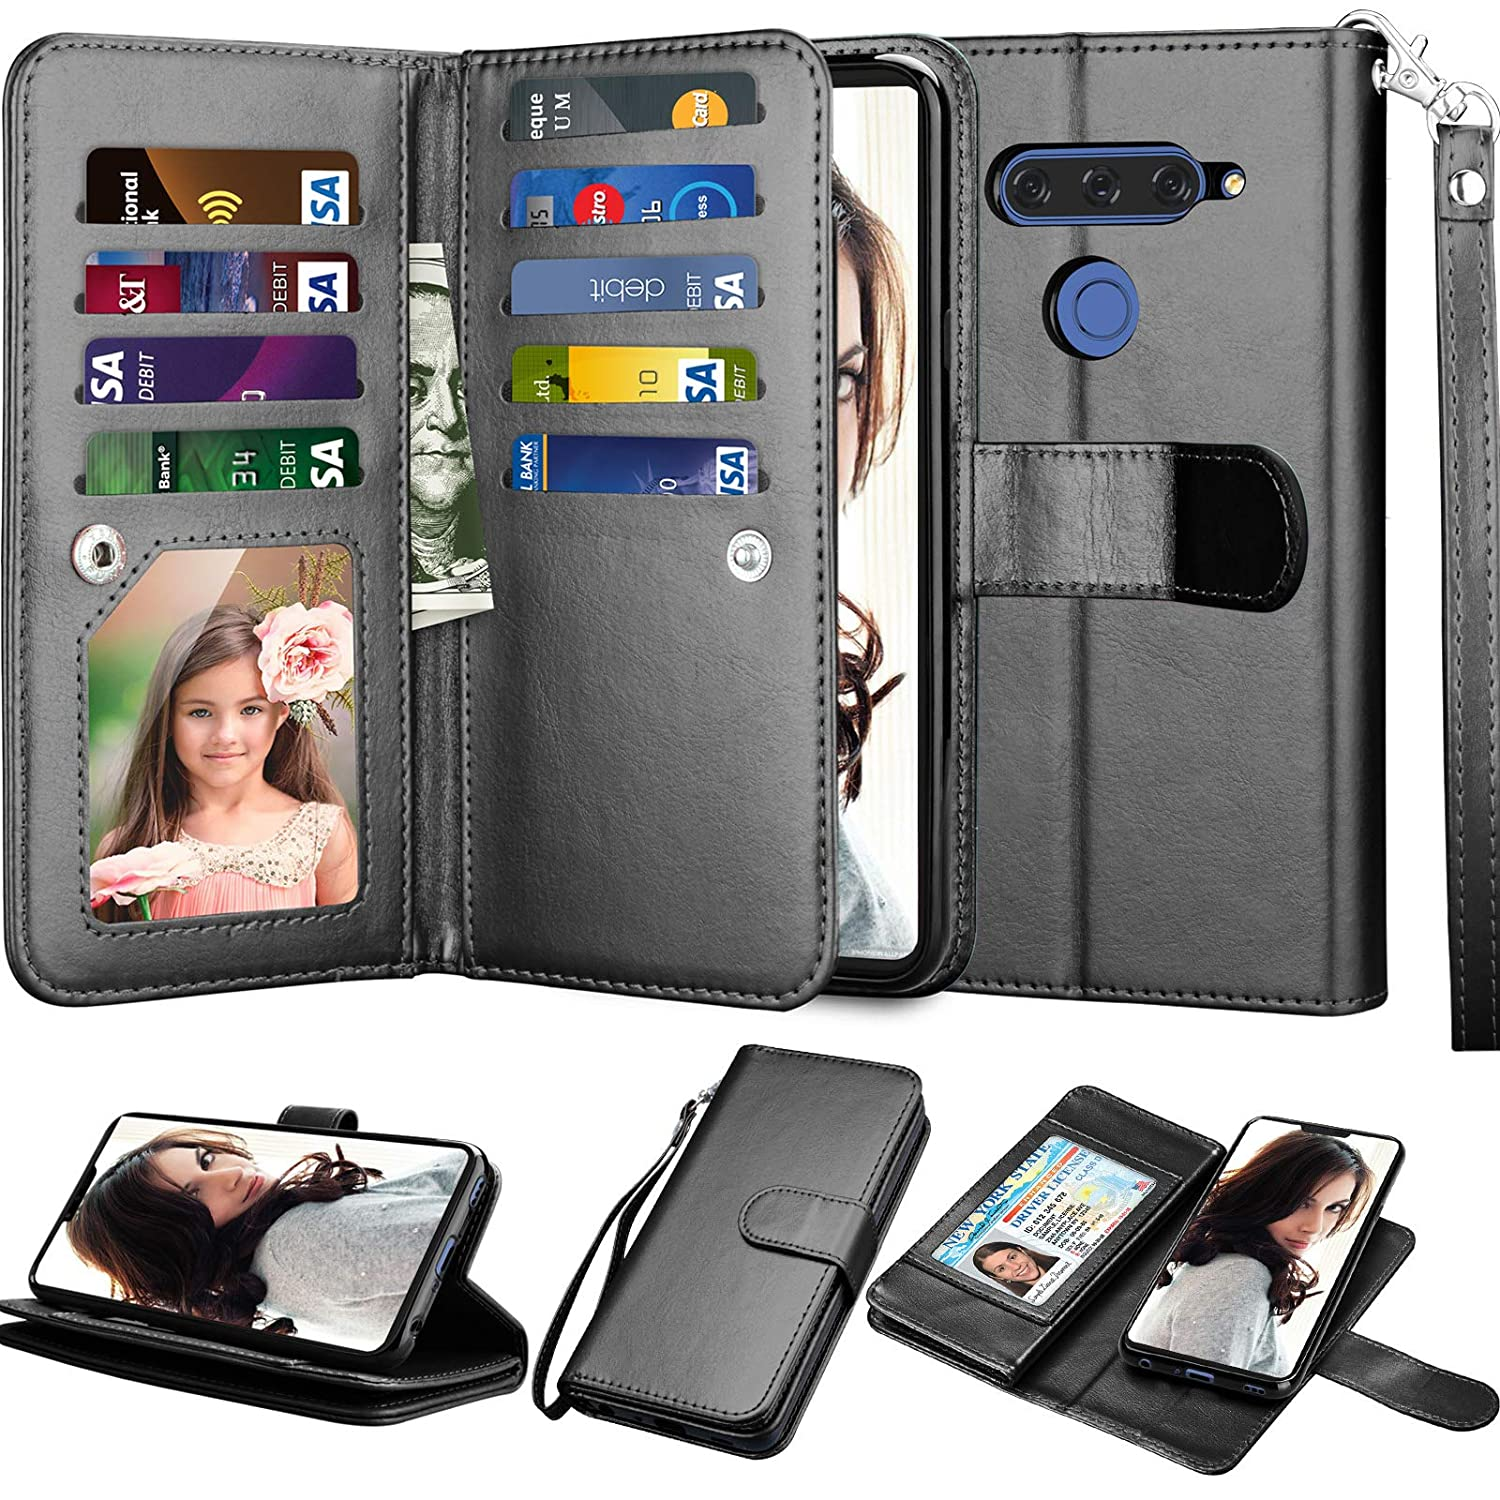 LG V40 ThinQ Wallet Case, LG V40 Case, LG V40 Storm Case, Njjex [9 Card Slots] PU Leather ID Credit Folio Flip [Detachable][Kickstand] Magnetic Phone Cover & Wrist Strap for LG V40 2018 [Black]